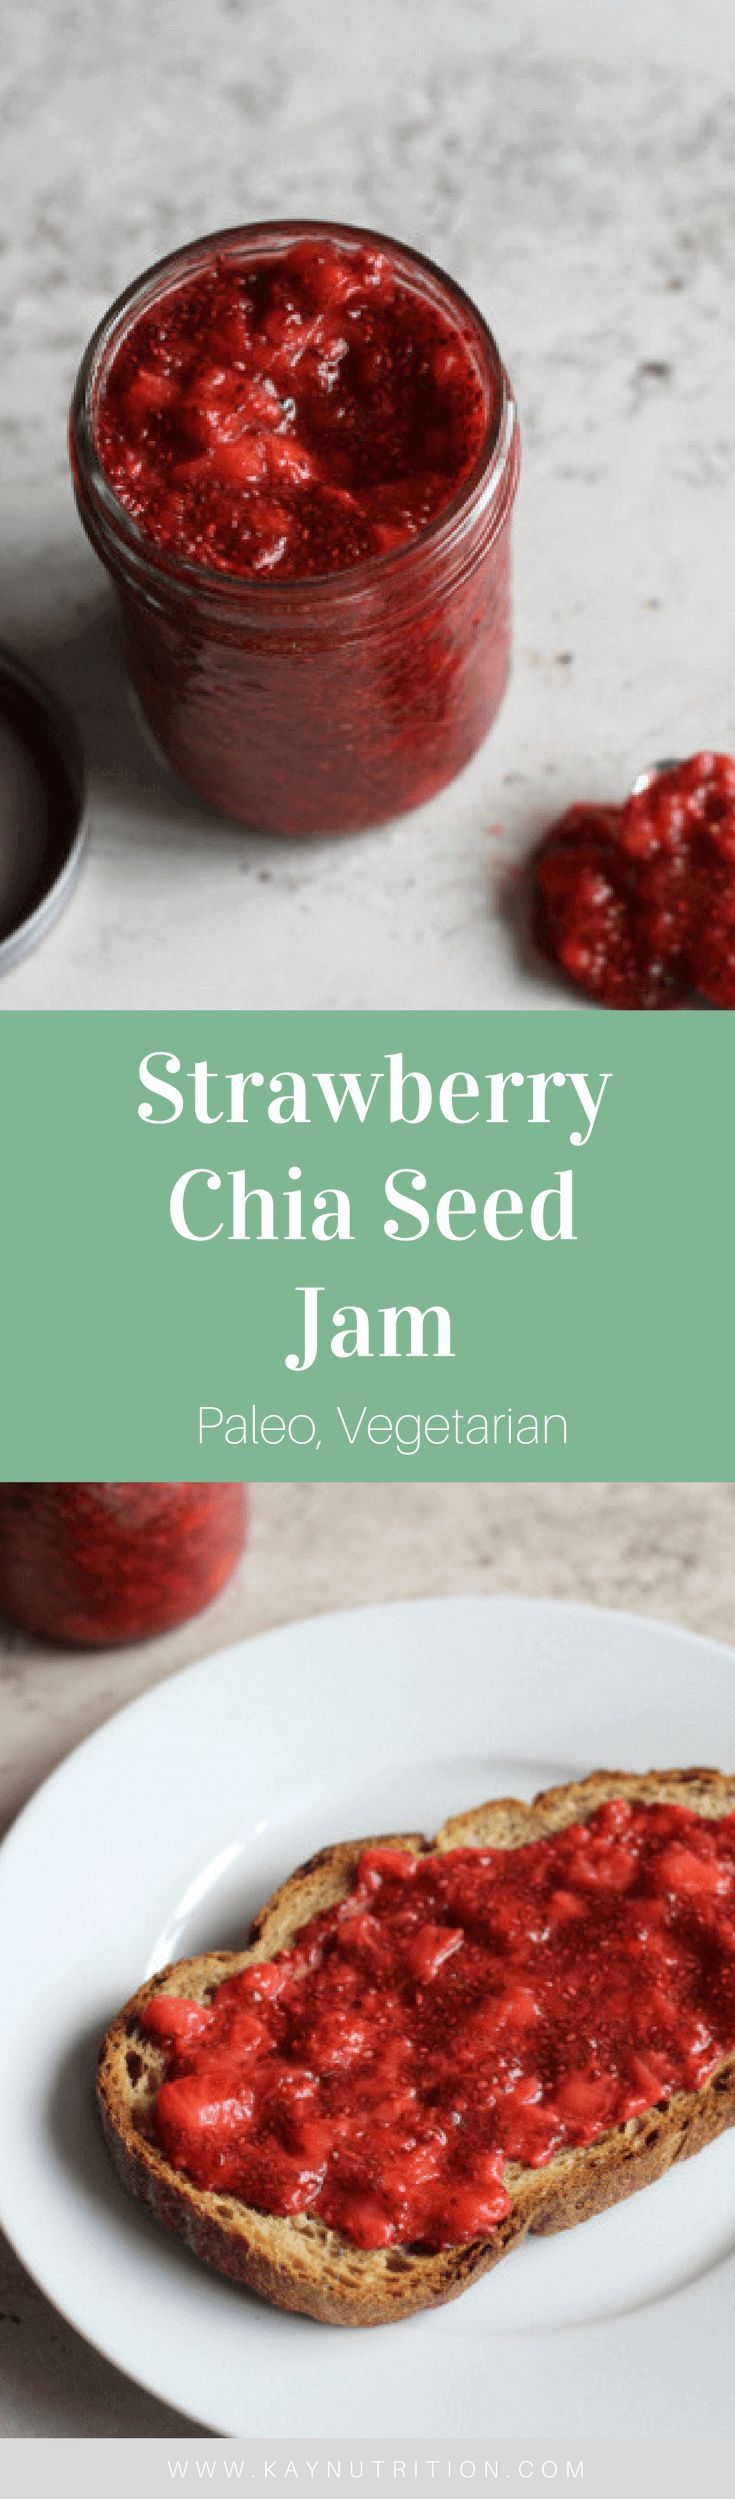 This Strawberry Chia Seed Jam is incredibly easy and even more delicious! Naturally sweetened with fruit, it is a healthy way to enjoy this simple spread.